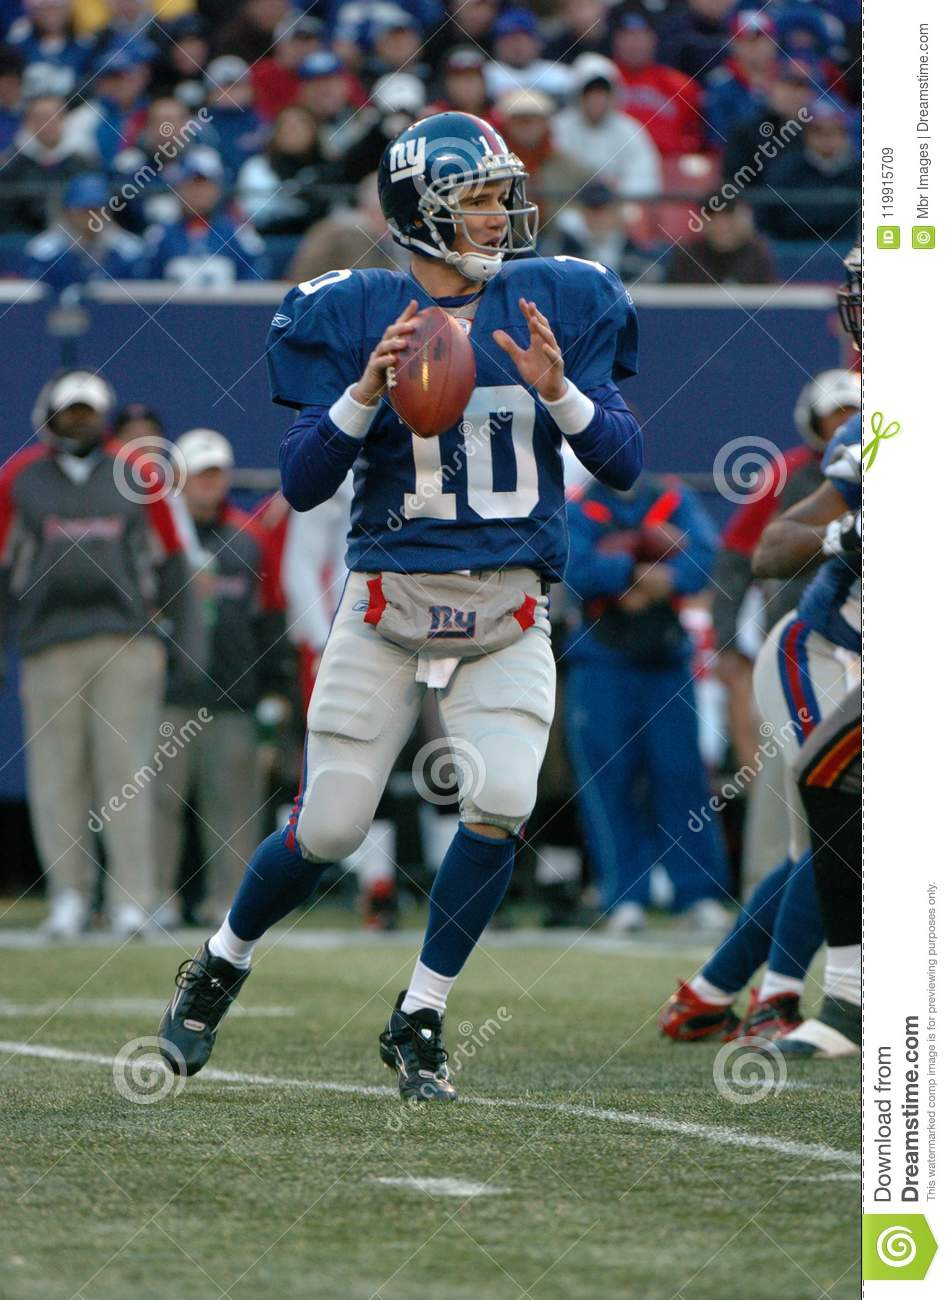 Eli Manning New York Giants Editorial Stock Image - Image of